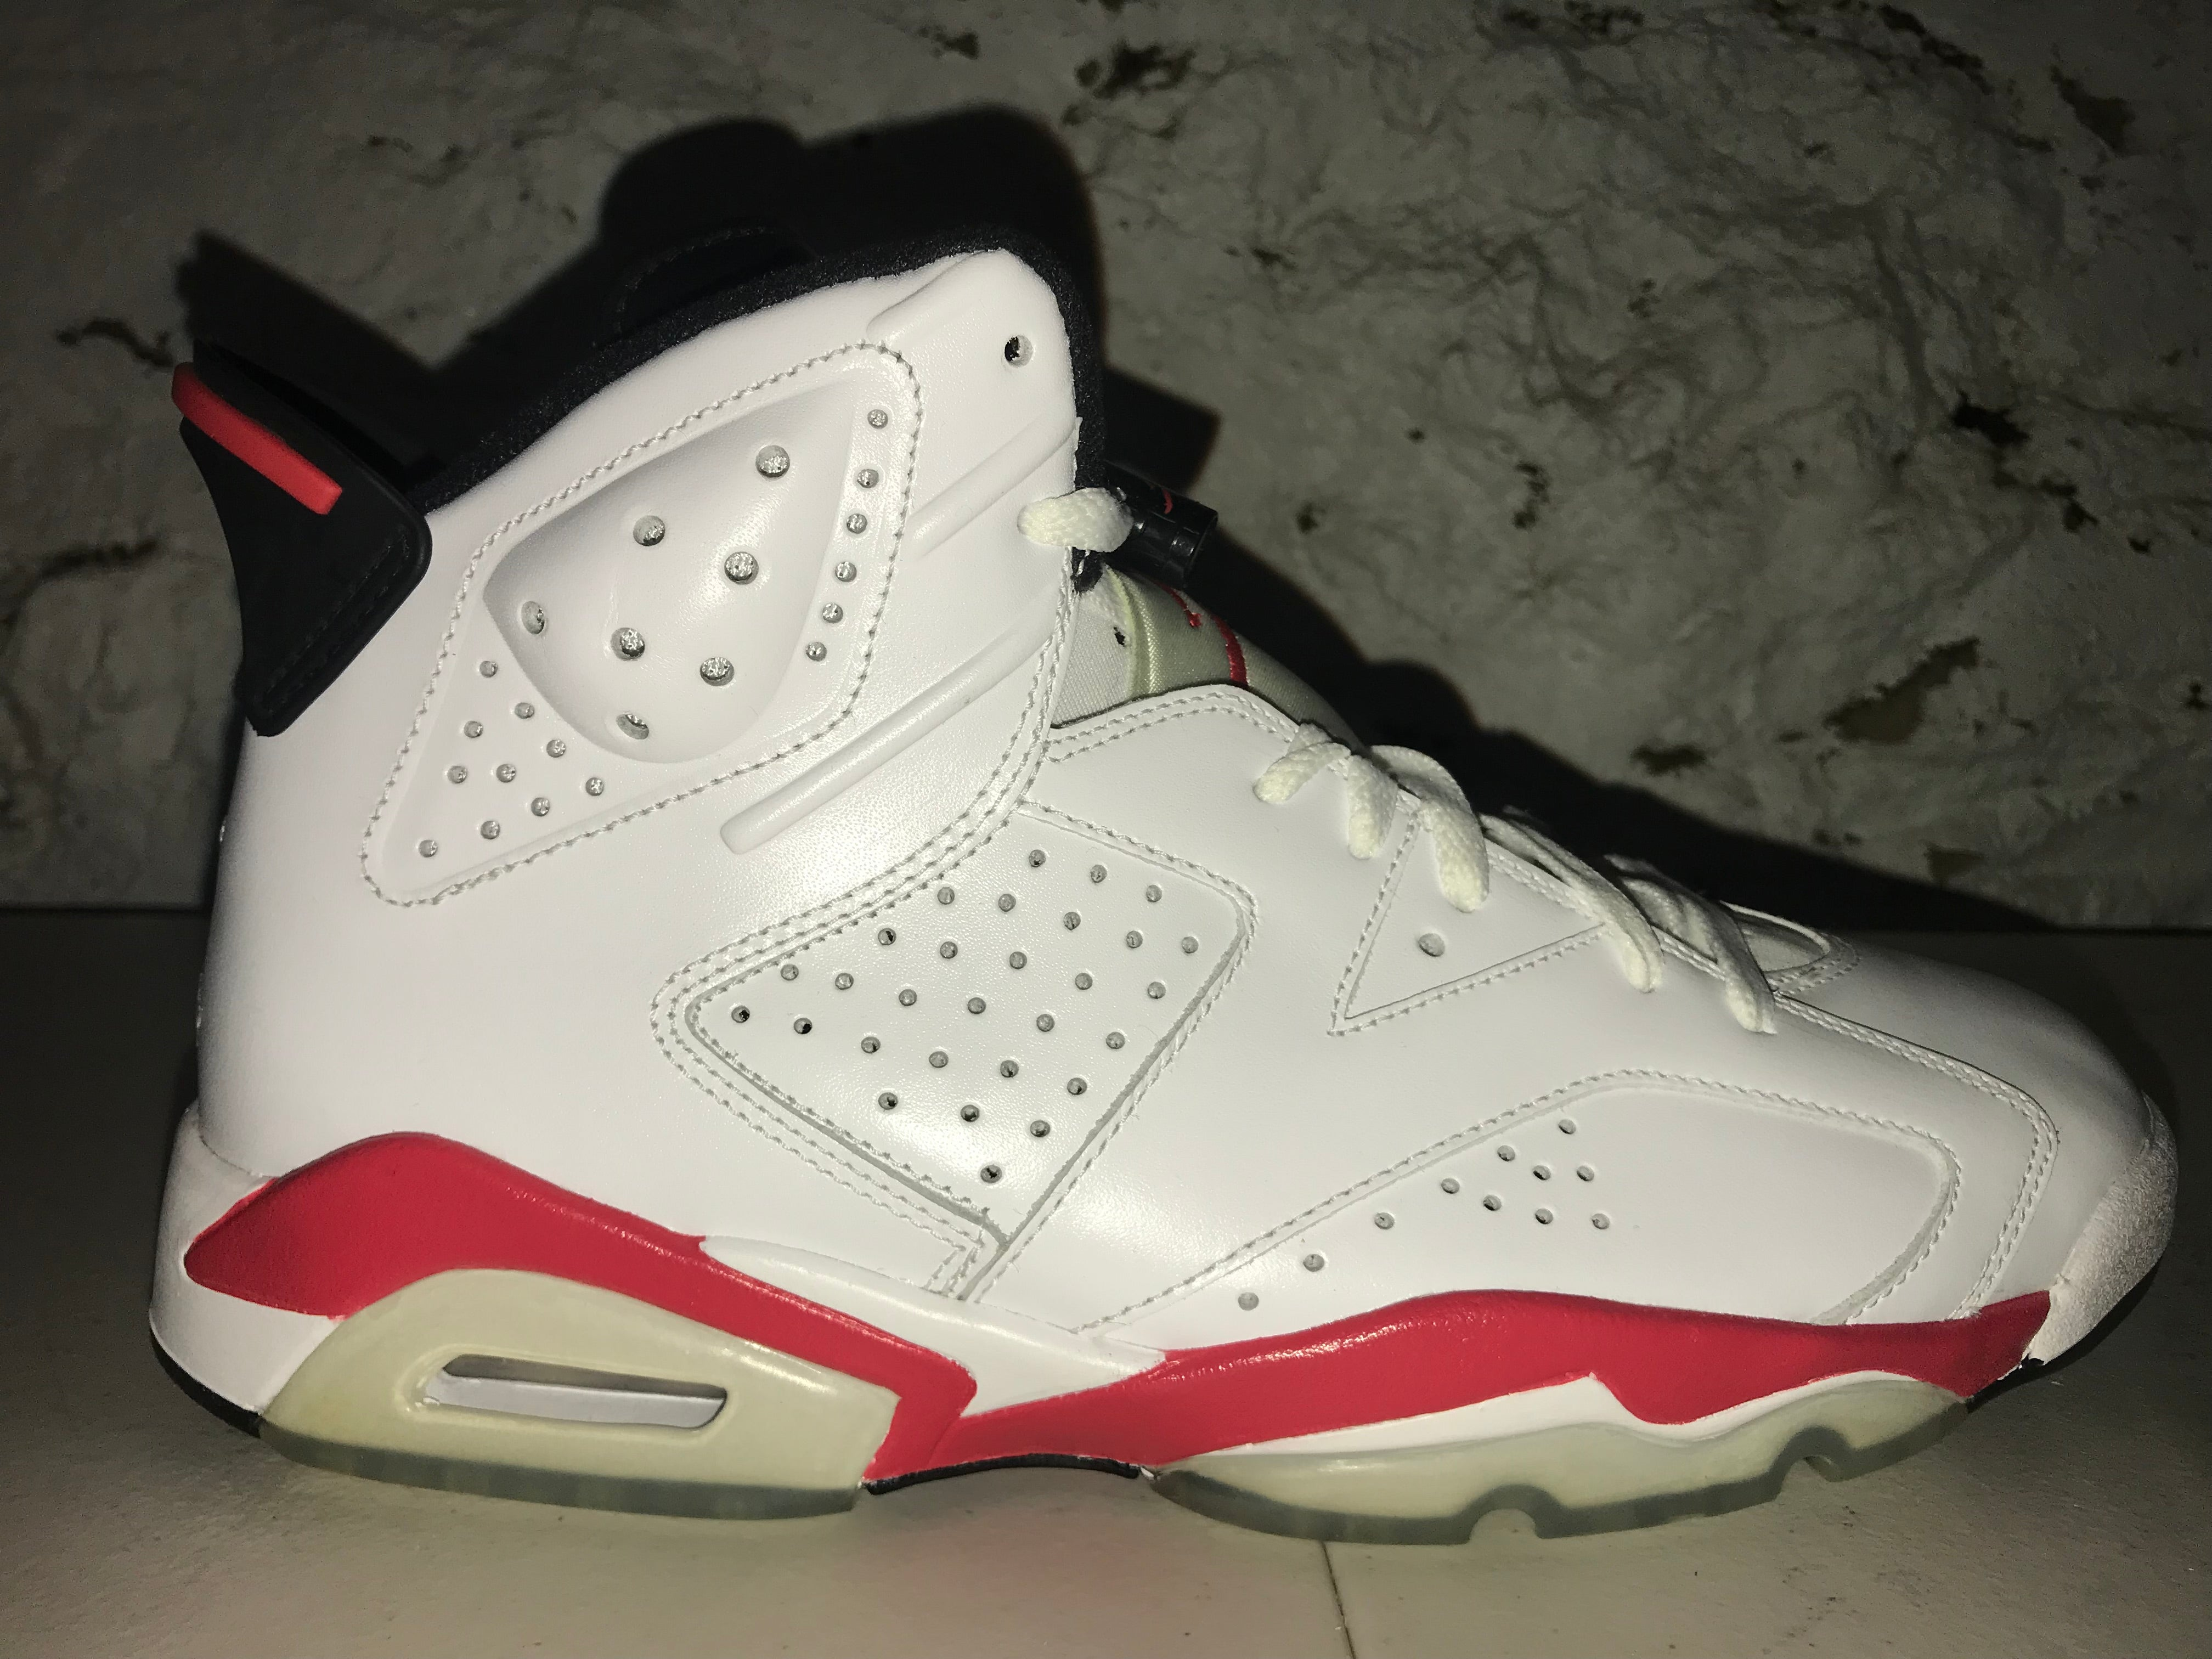 super popular 2480a ff66f cheapest air jordan 6 retro olympic 2012 new original 0ea3b 65cb7   authentic size 10 air jordan 6 infrared brand new aba89 4190c